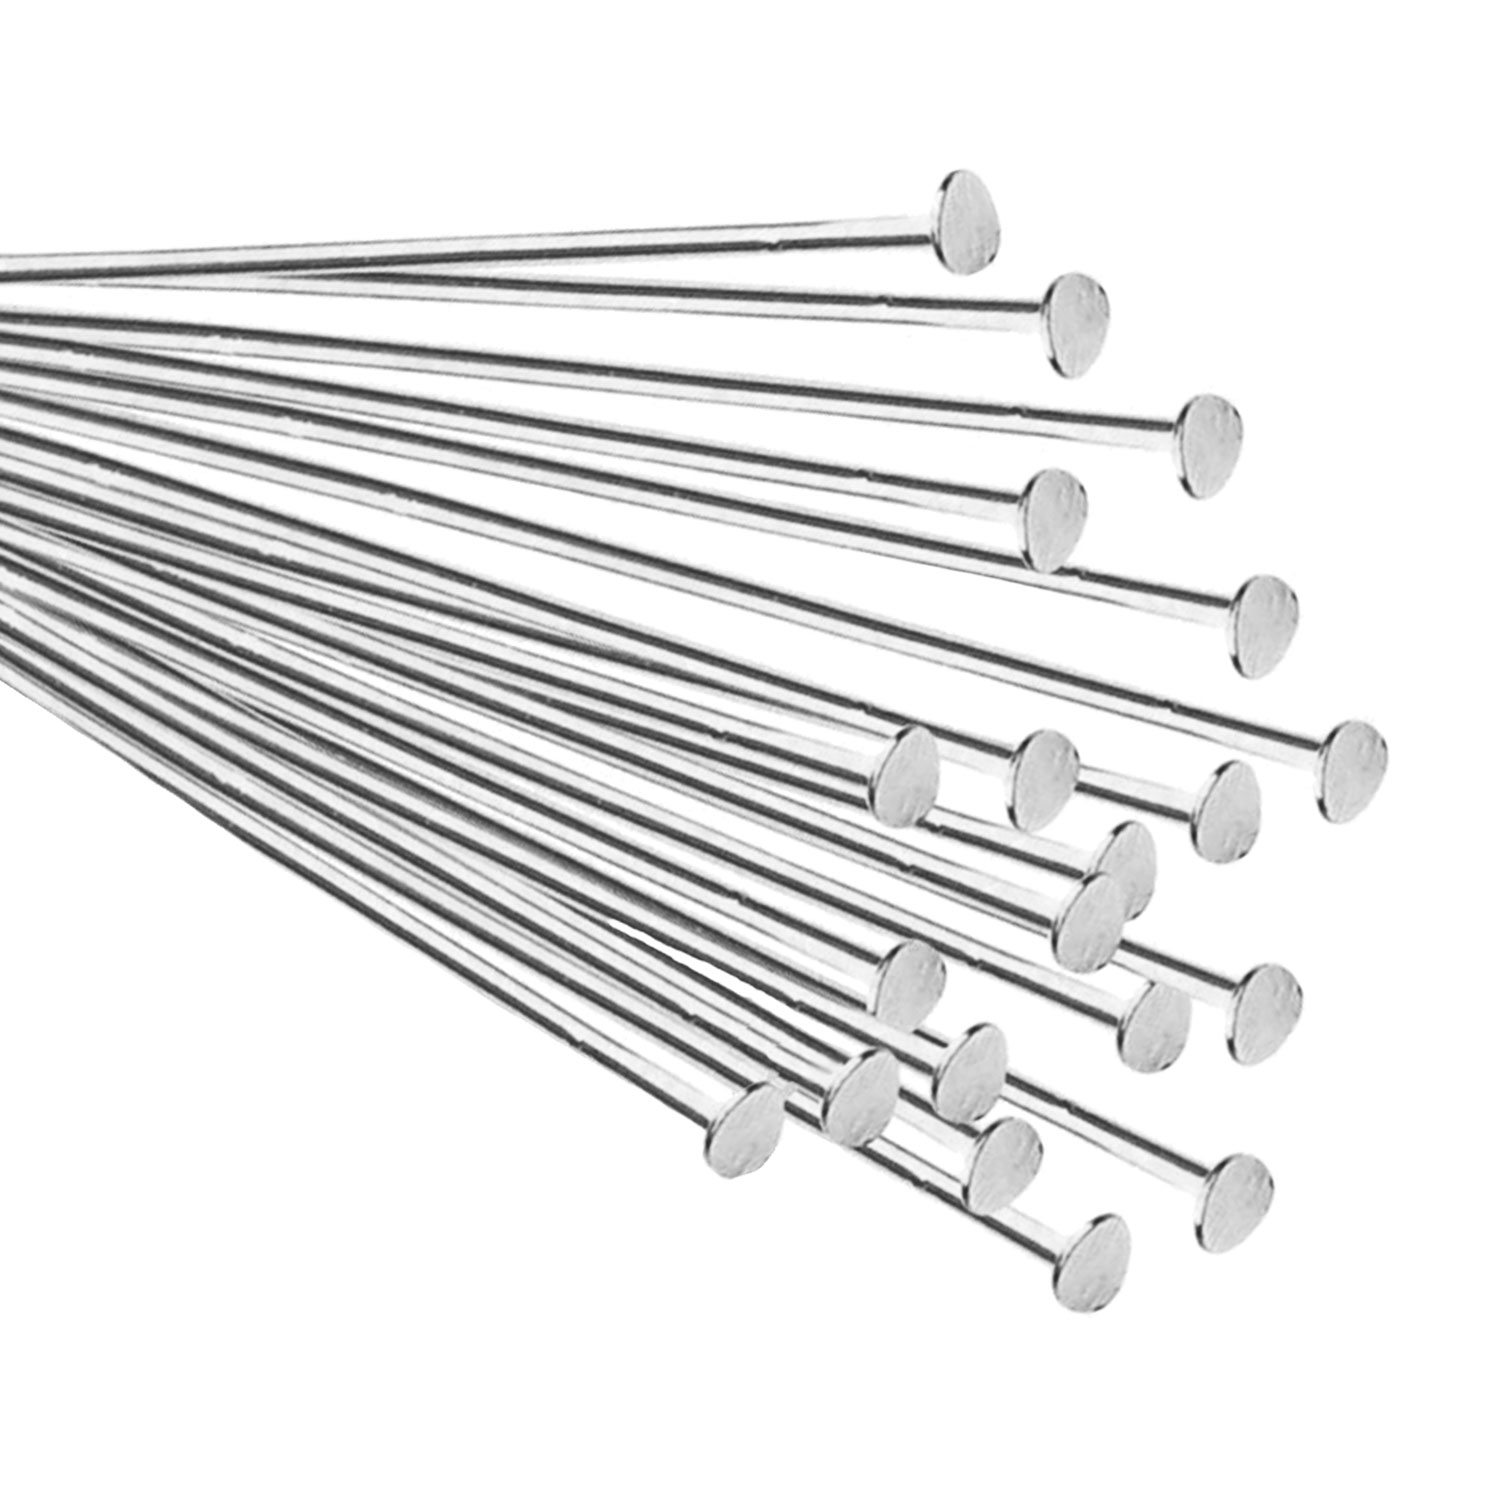 20x Silver Filled 925 Headpins Head pins 26ga 26 Gauge 1.5""